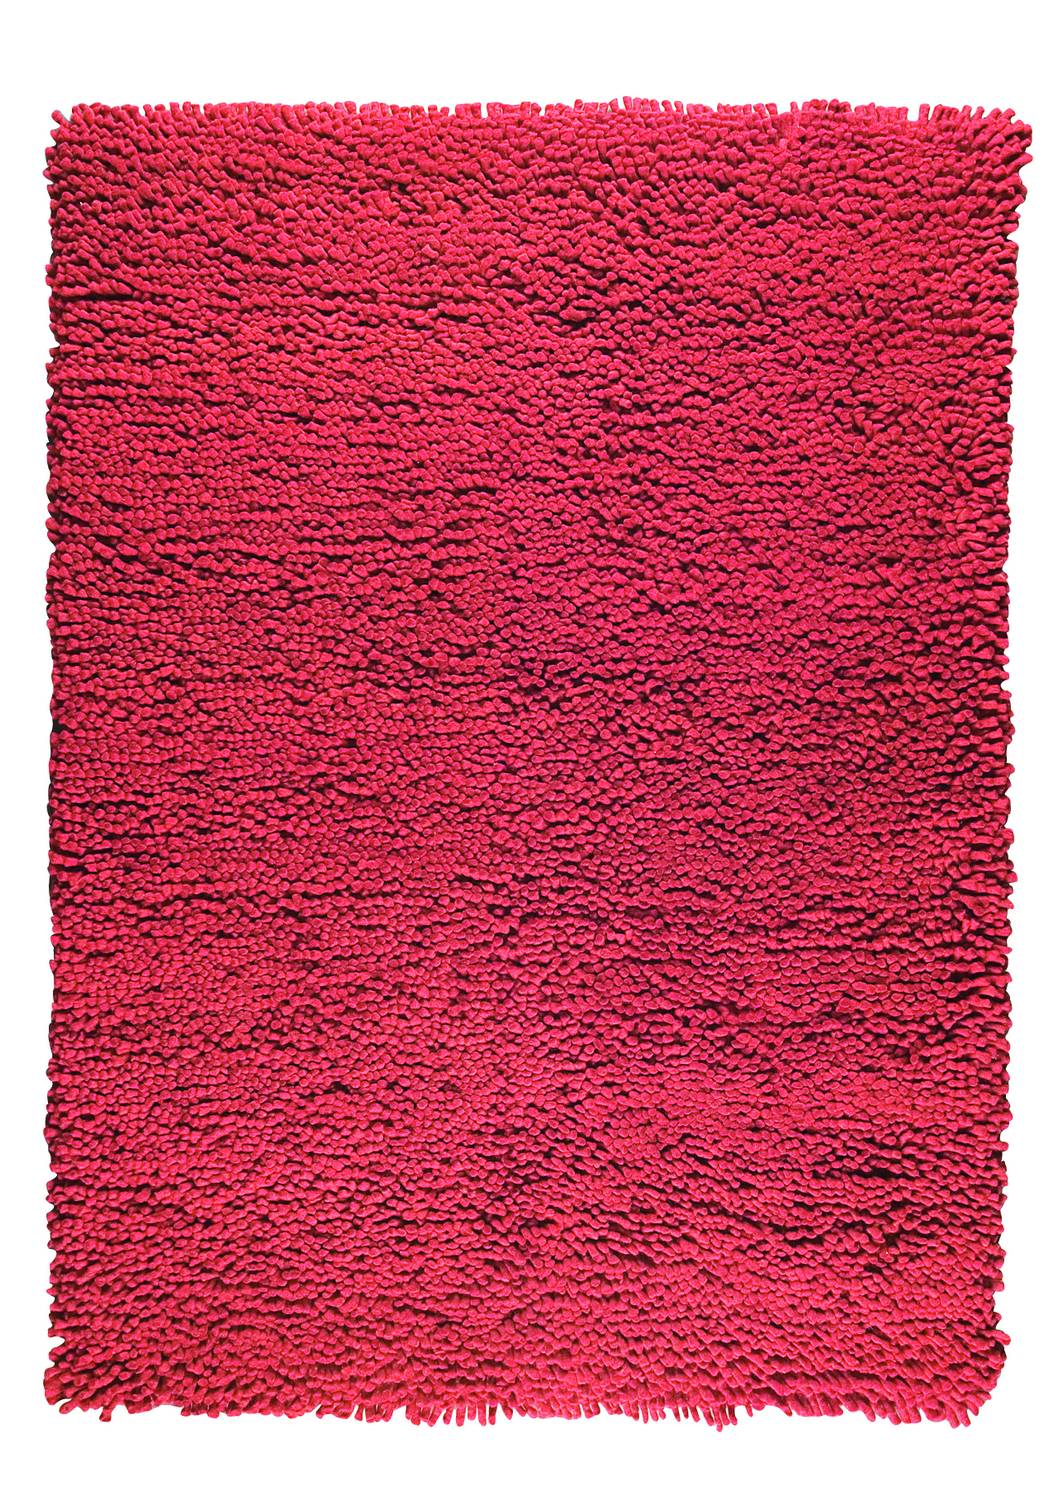 Mat the basics berber area rug red for Wool berber area rug